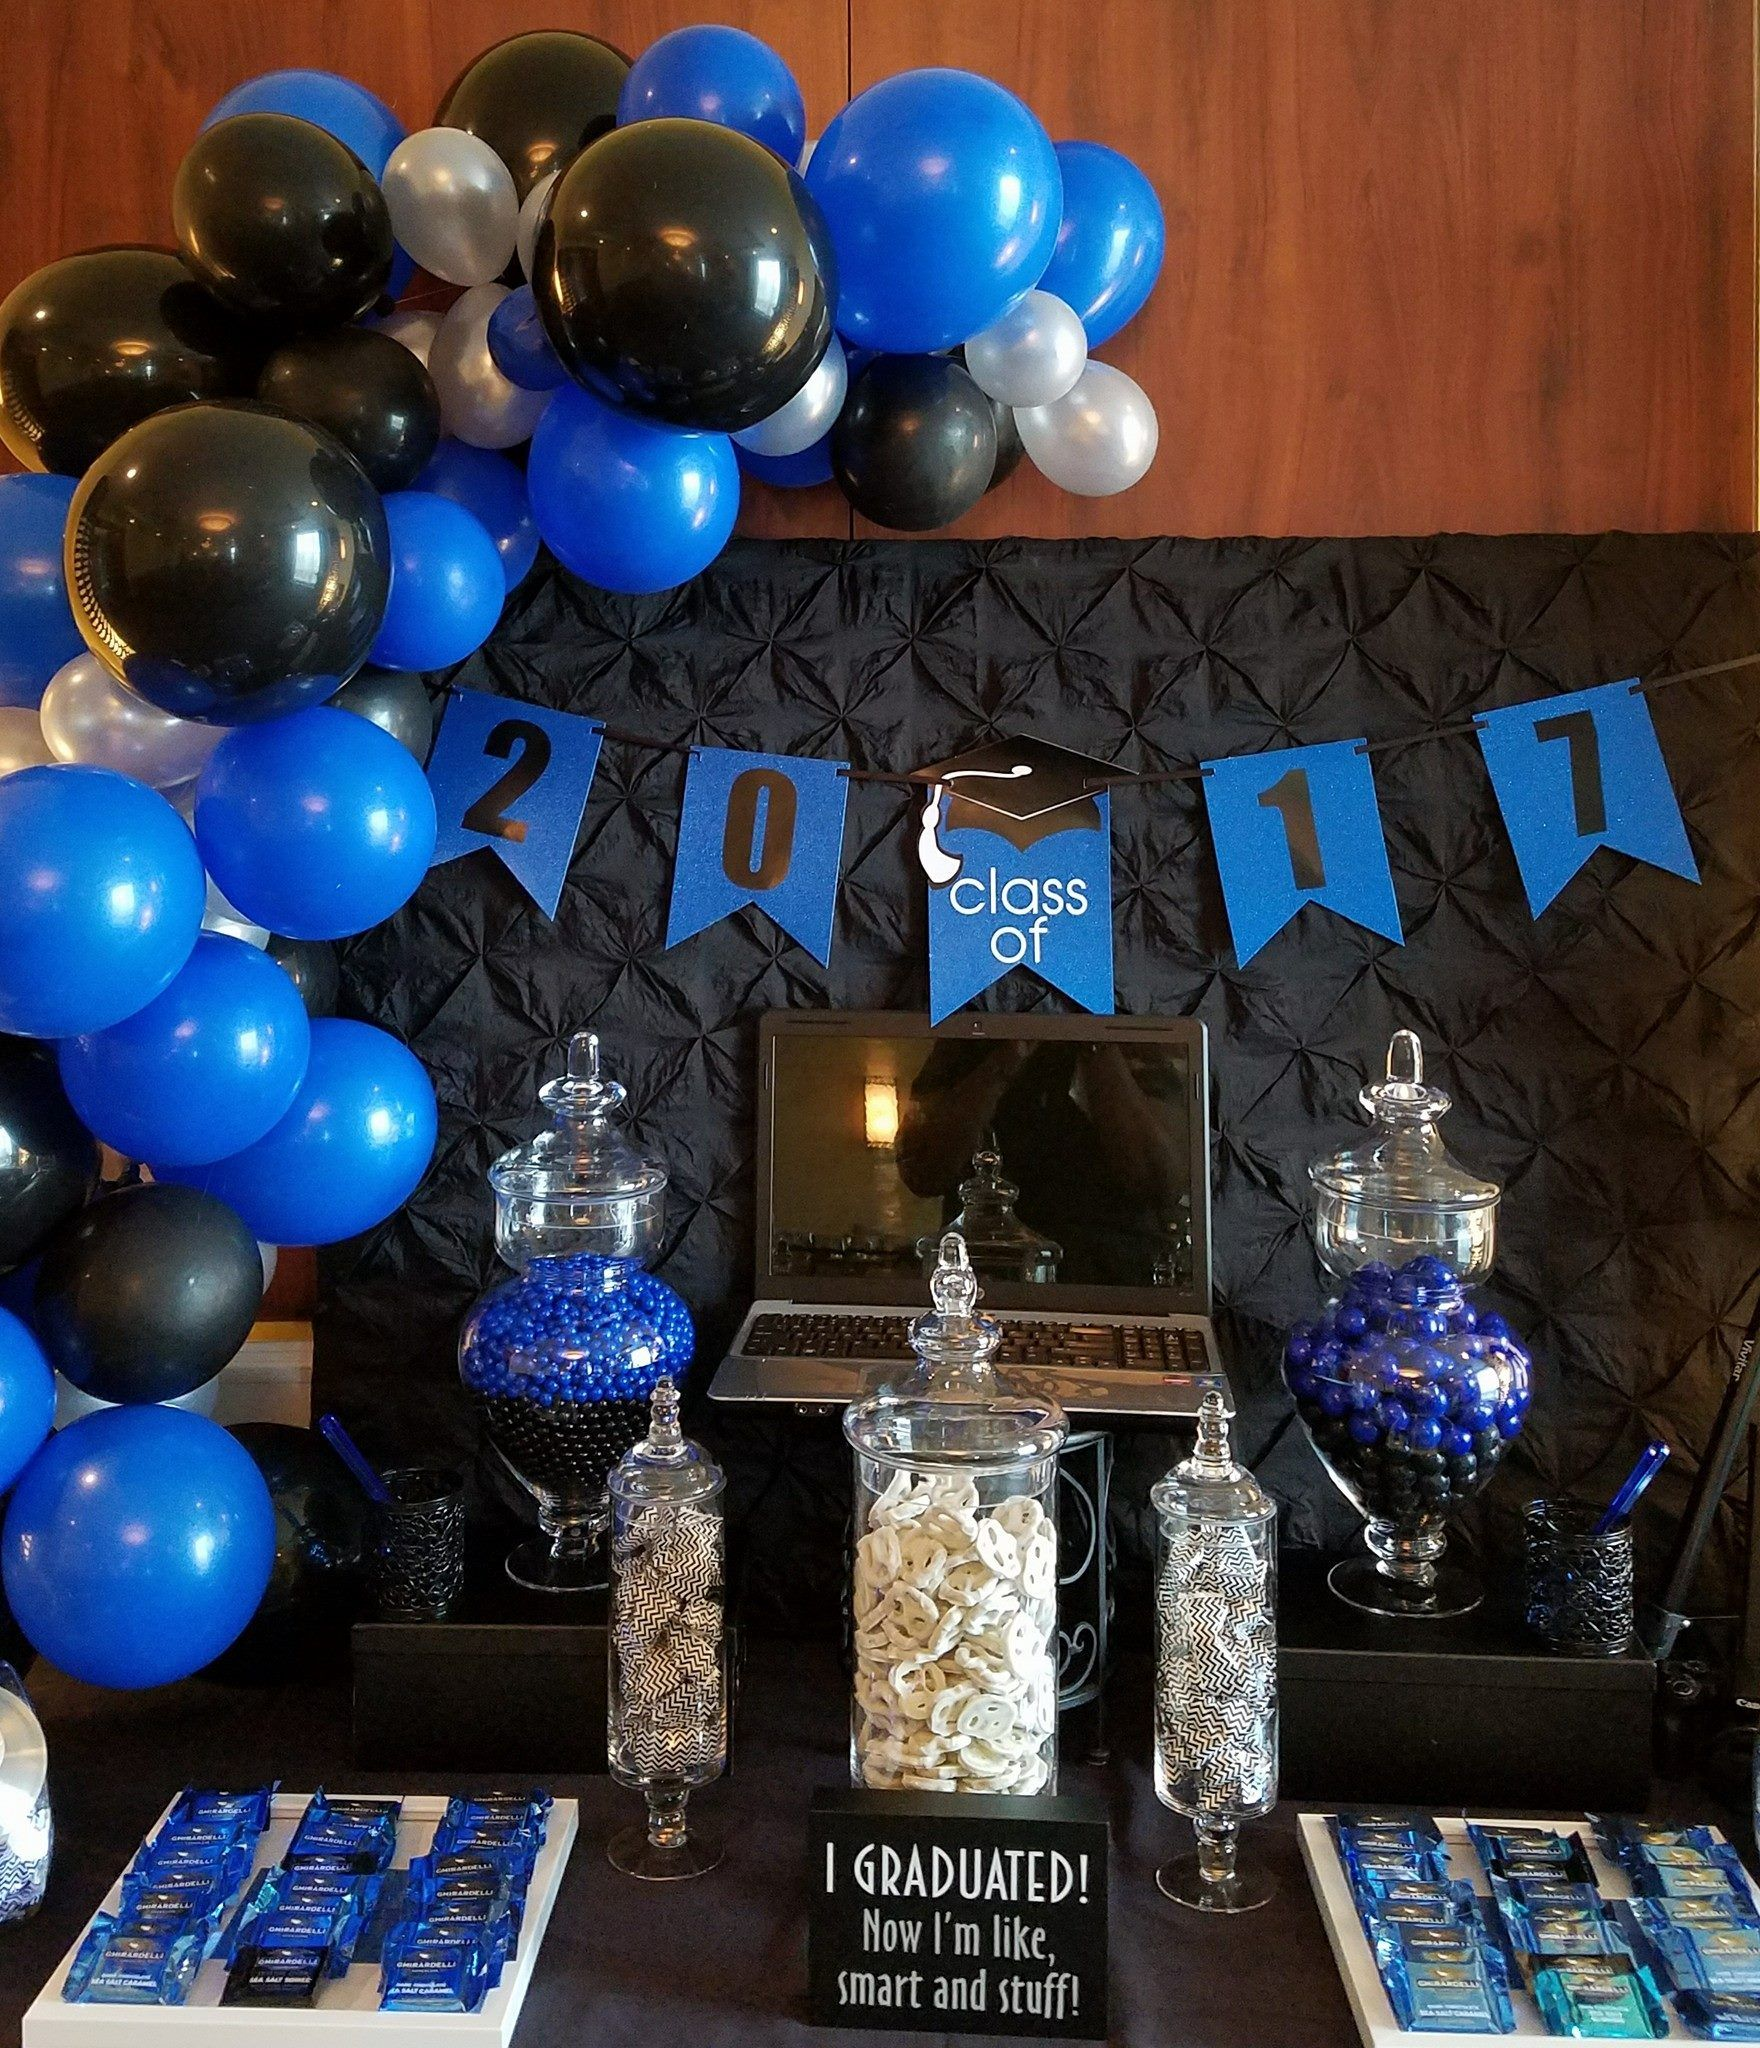 Sweet Treats In Shade Of Blue White And Black Class Of 2017